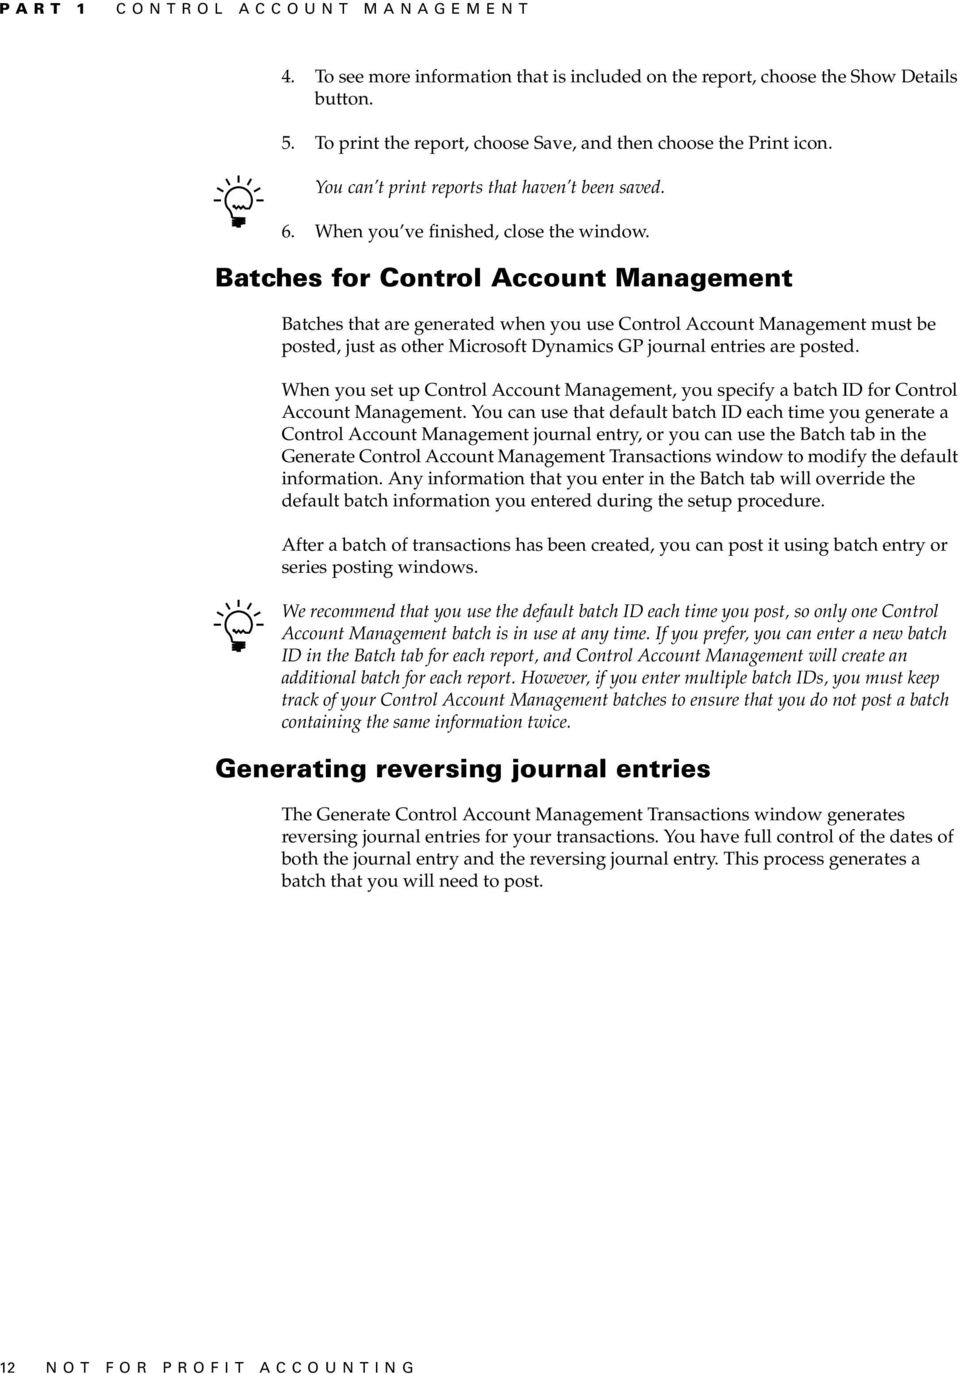 Batches for Control Account Management Batches that are generated when you use Control Account Management must be posted, just as other Microsoft Dynamics GP journal entries are posted.